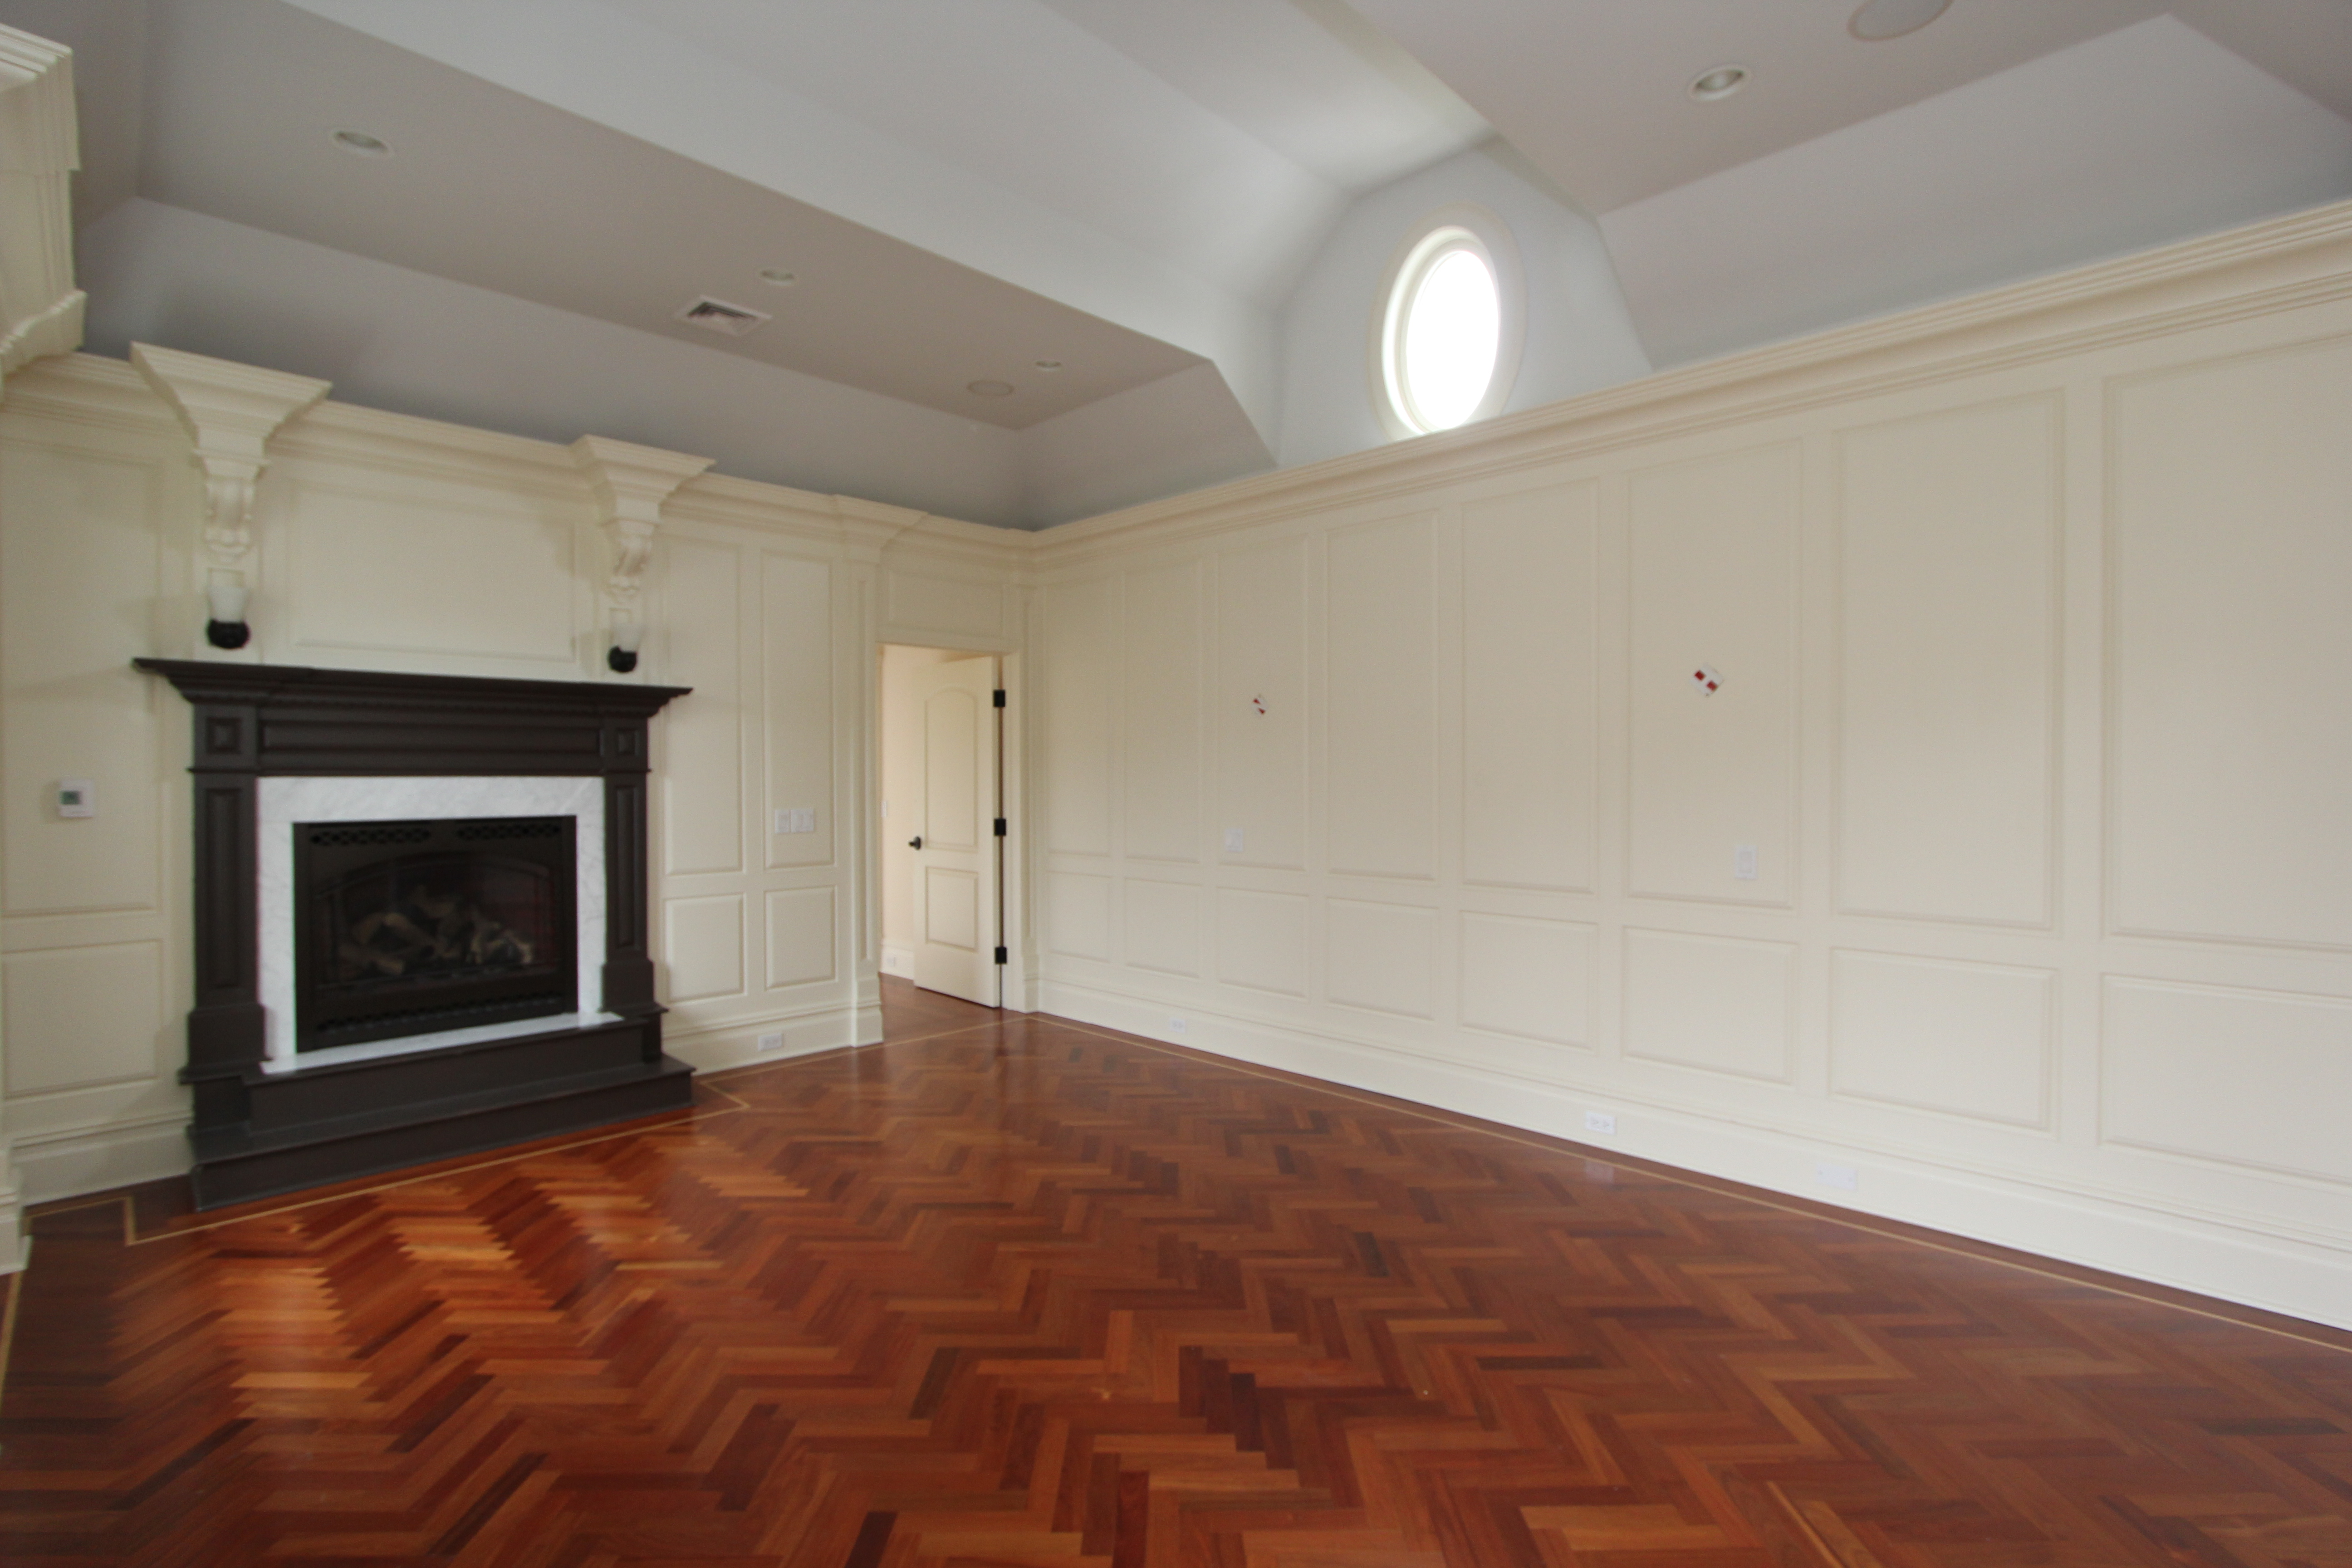 BEFORE staging a vacant room is hard to envision for buyers